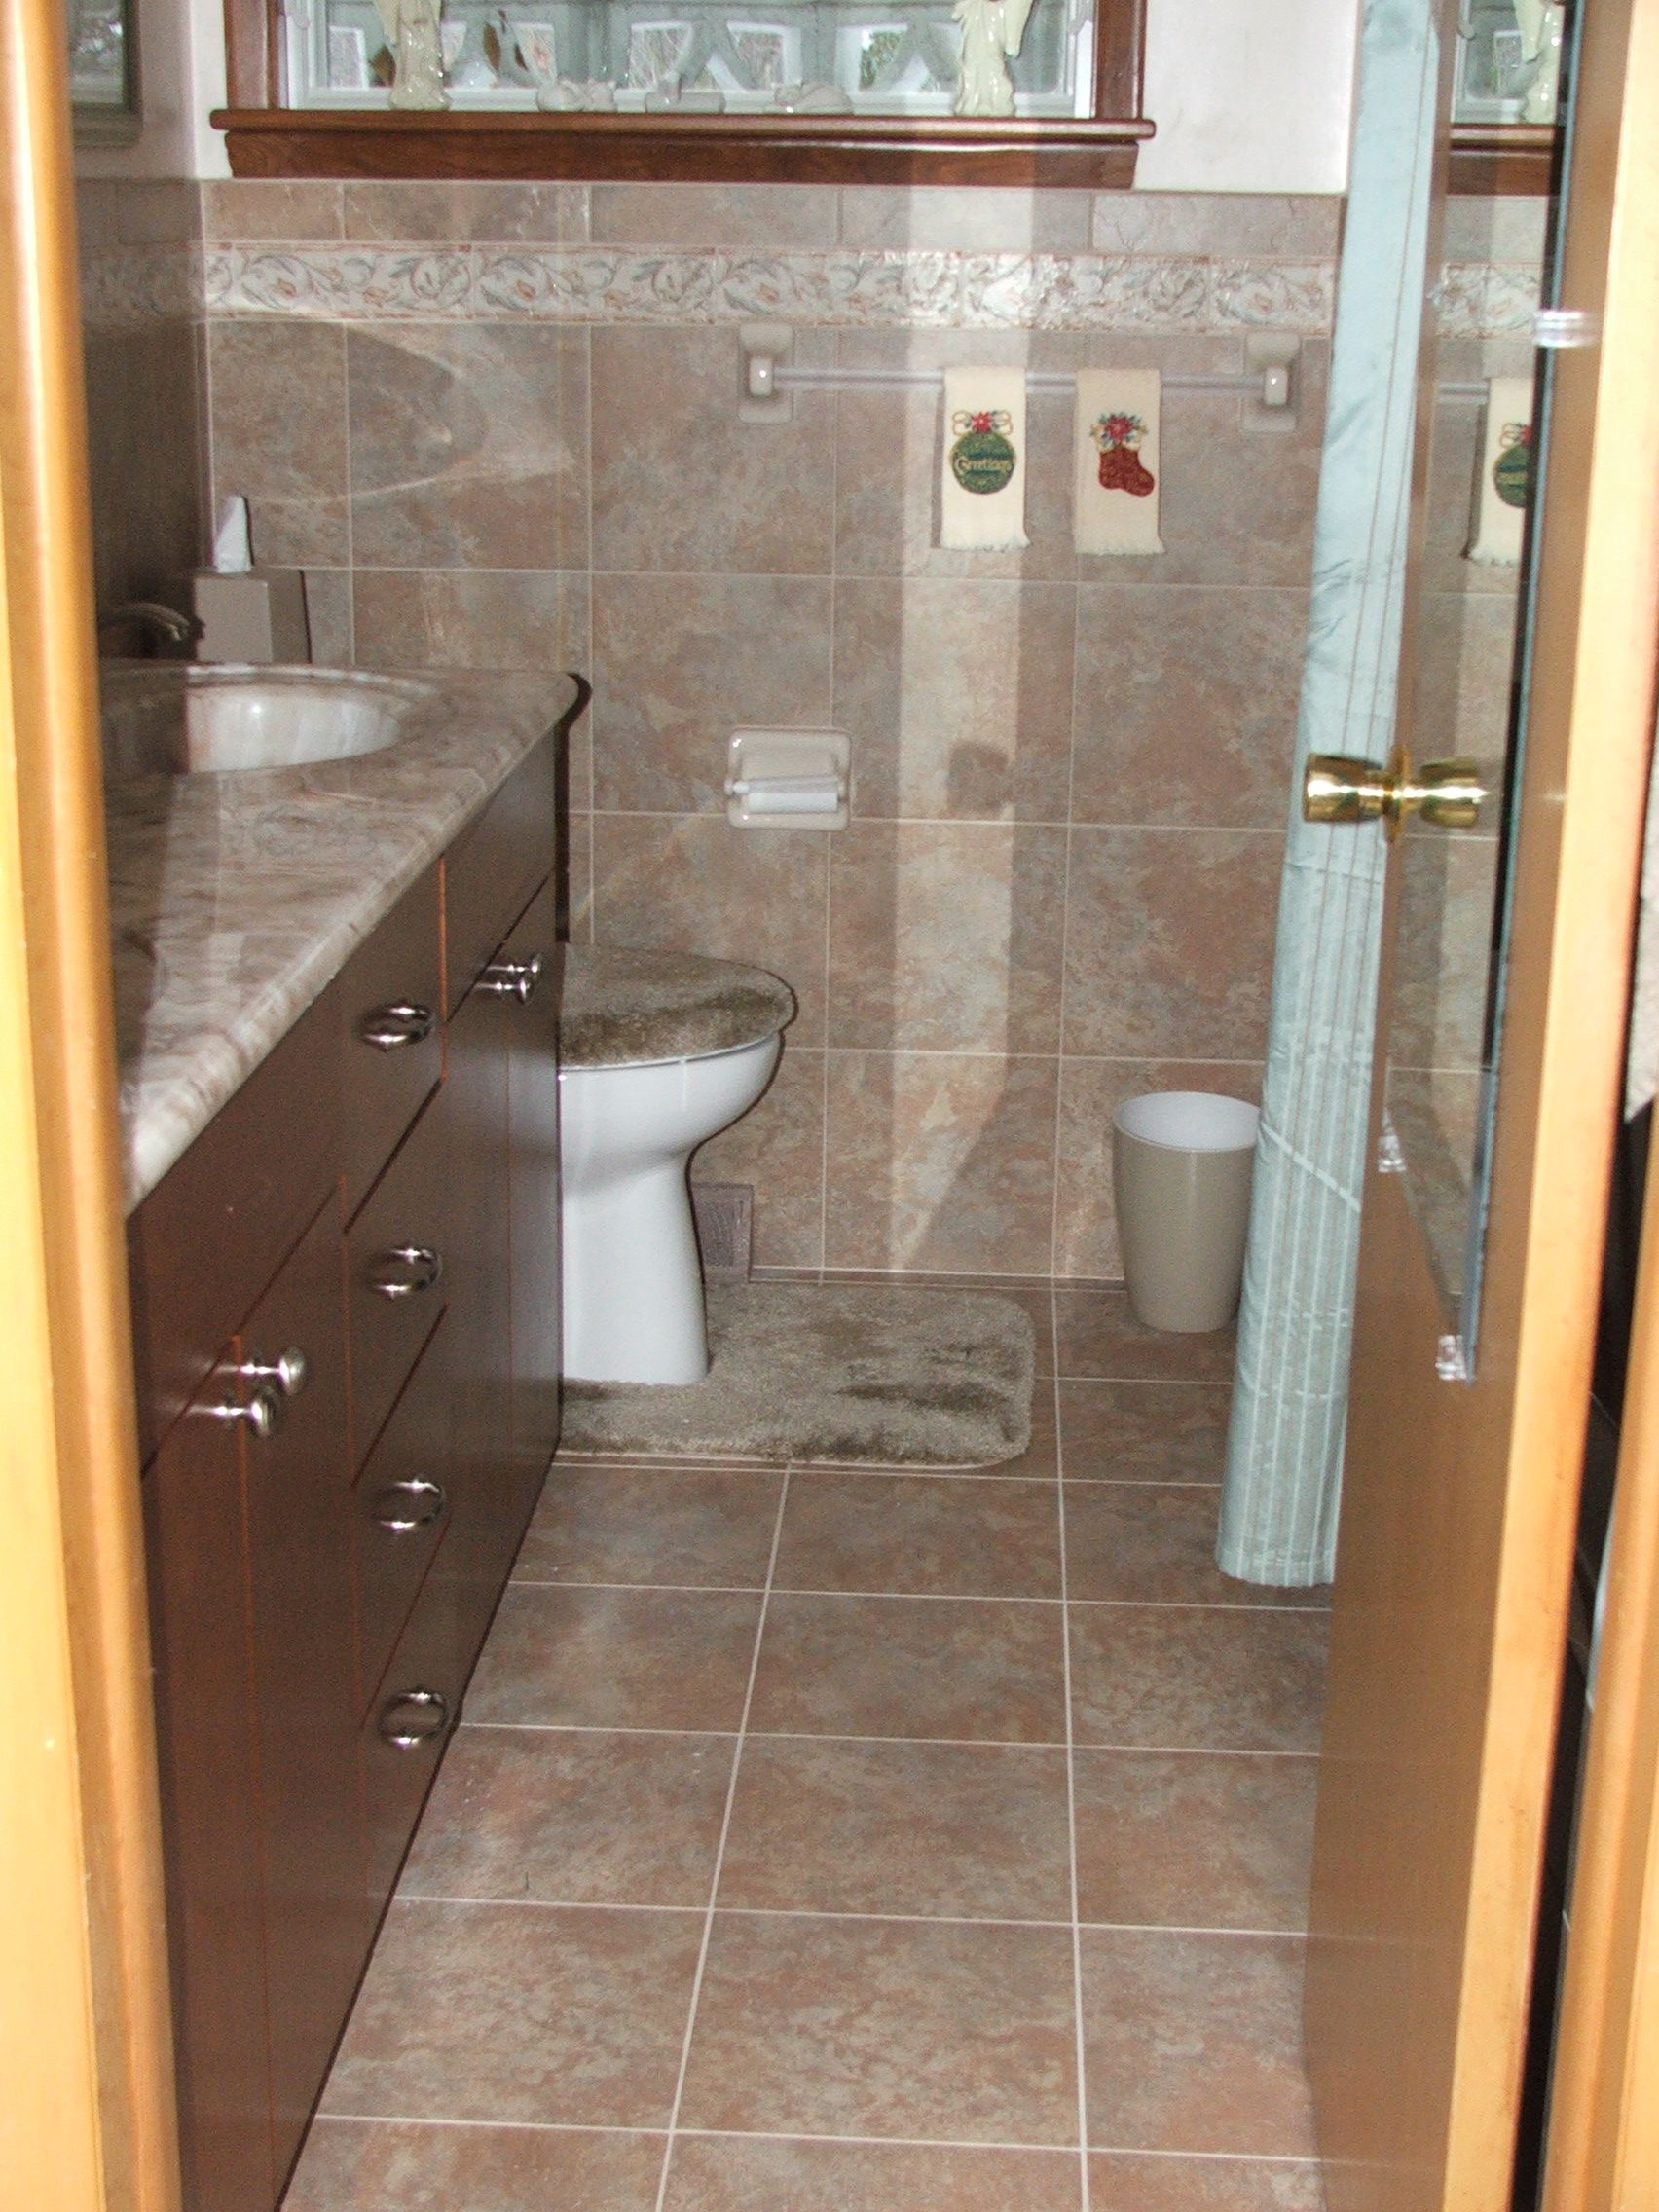 A completely tiled bathroom by custom home interiors in charlotte this soft and beautiful mannington porcelain tile is easy to clean and offers a breathtaking beauty to this updated bathroom dailygadgetfo Image collections